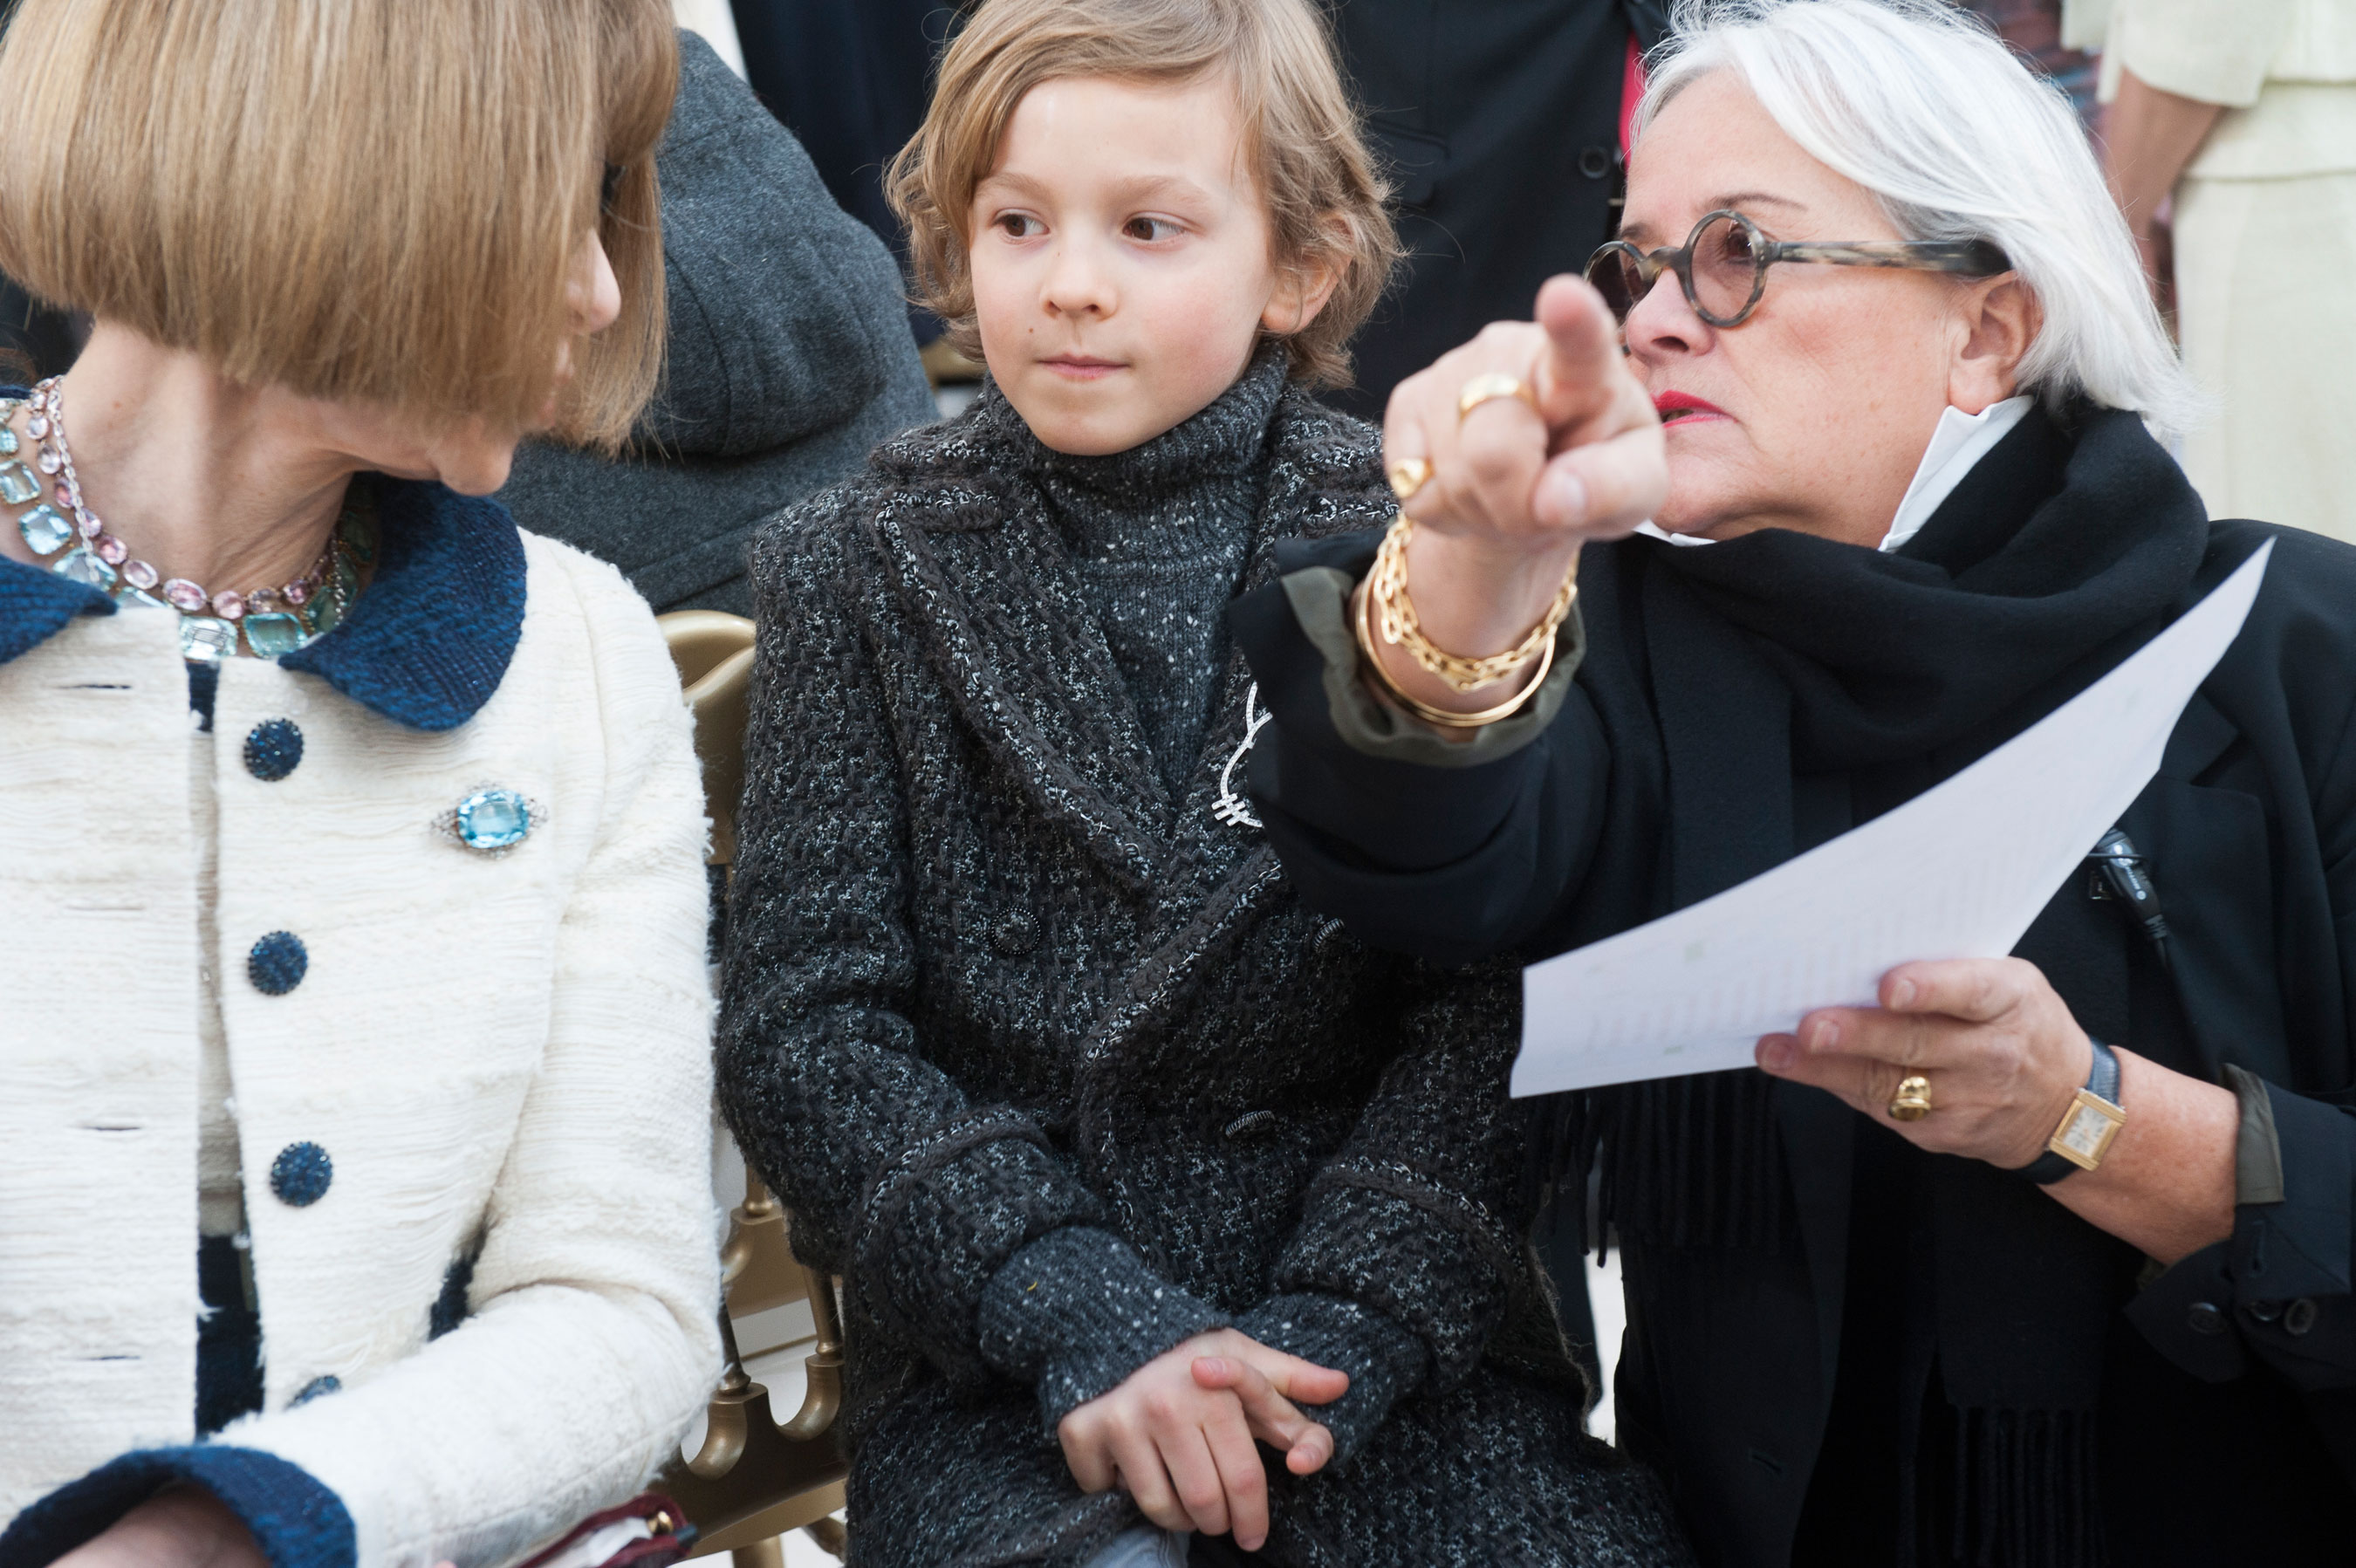 Anna Wintour & Hudson Kroenig at Chanel